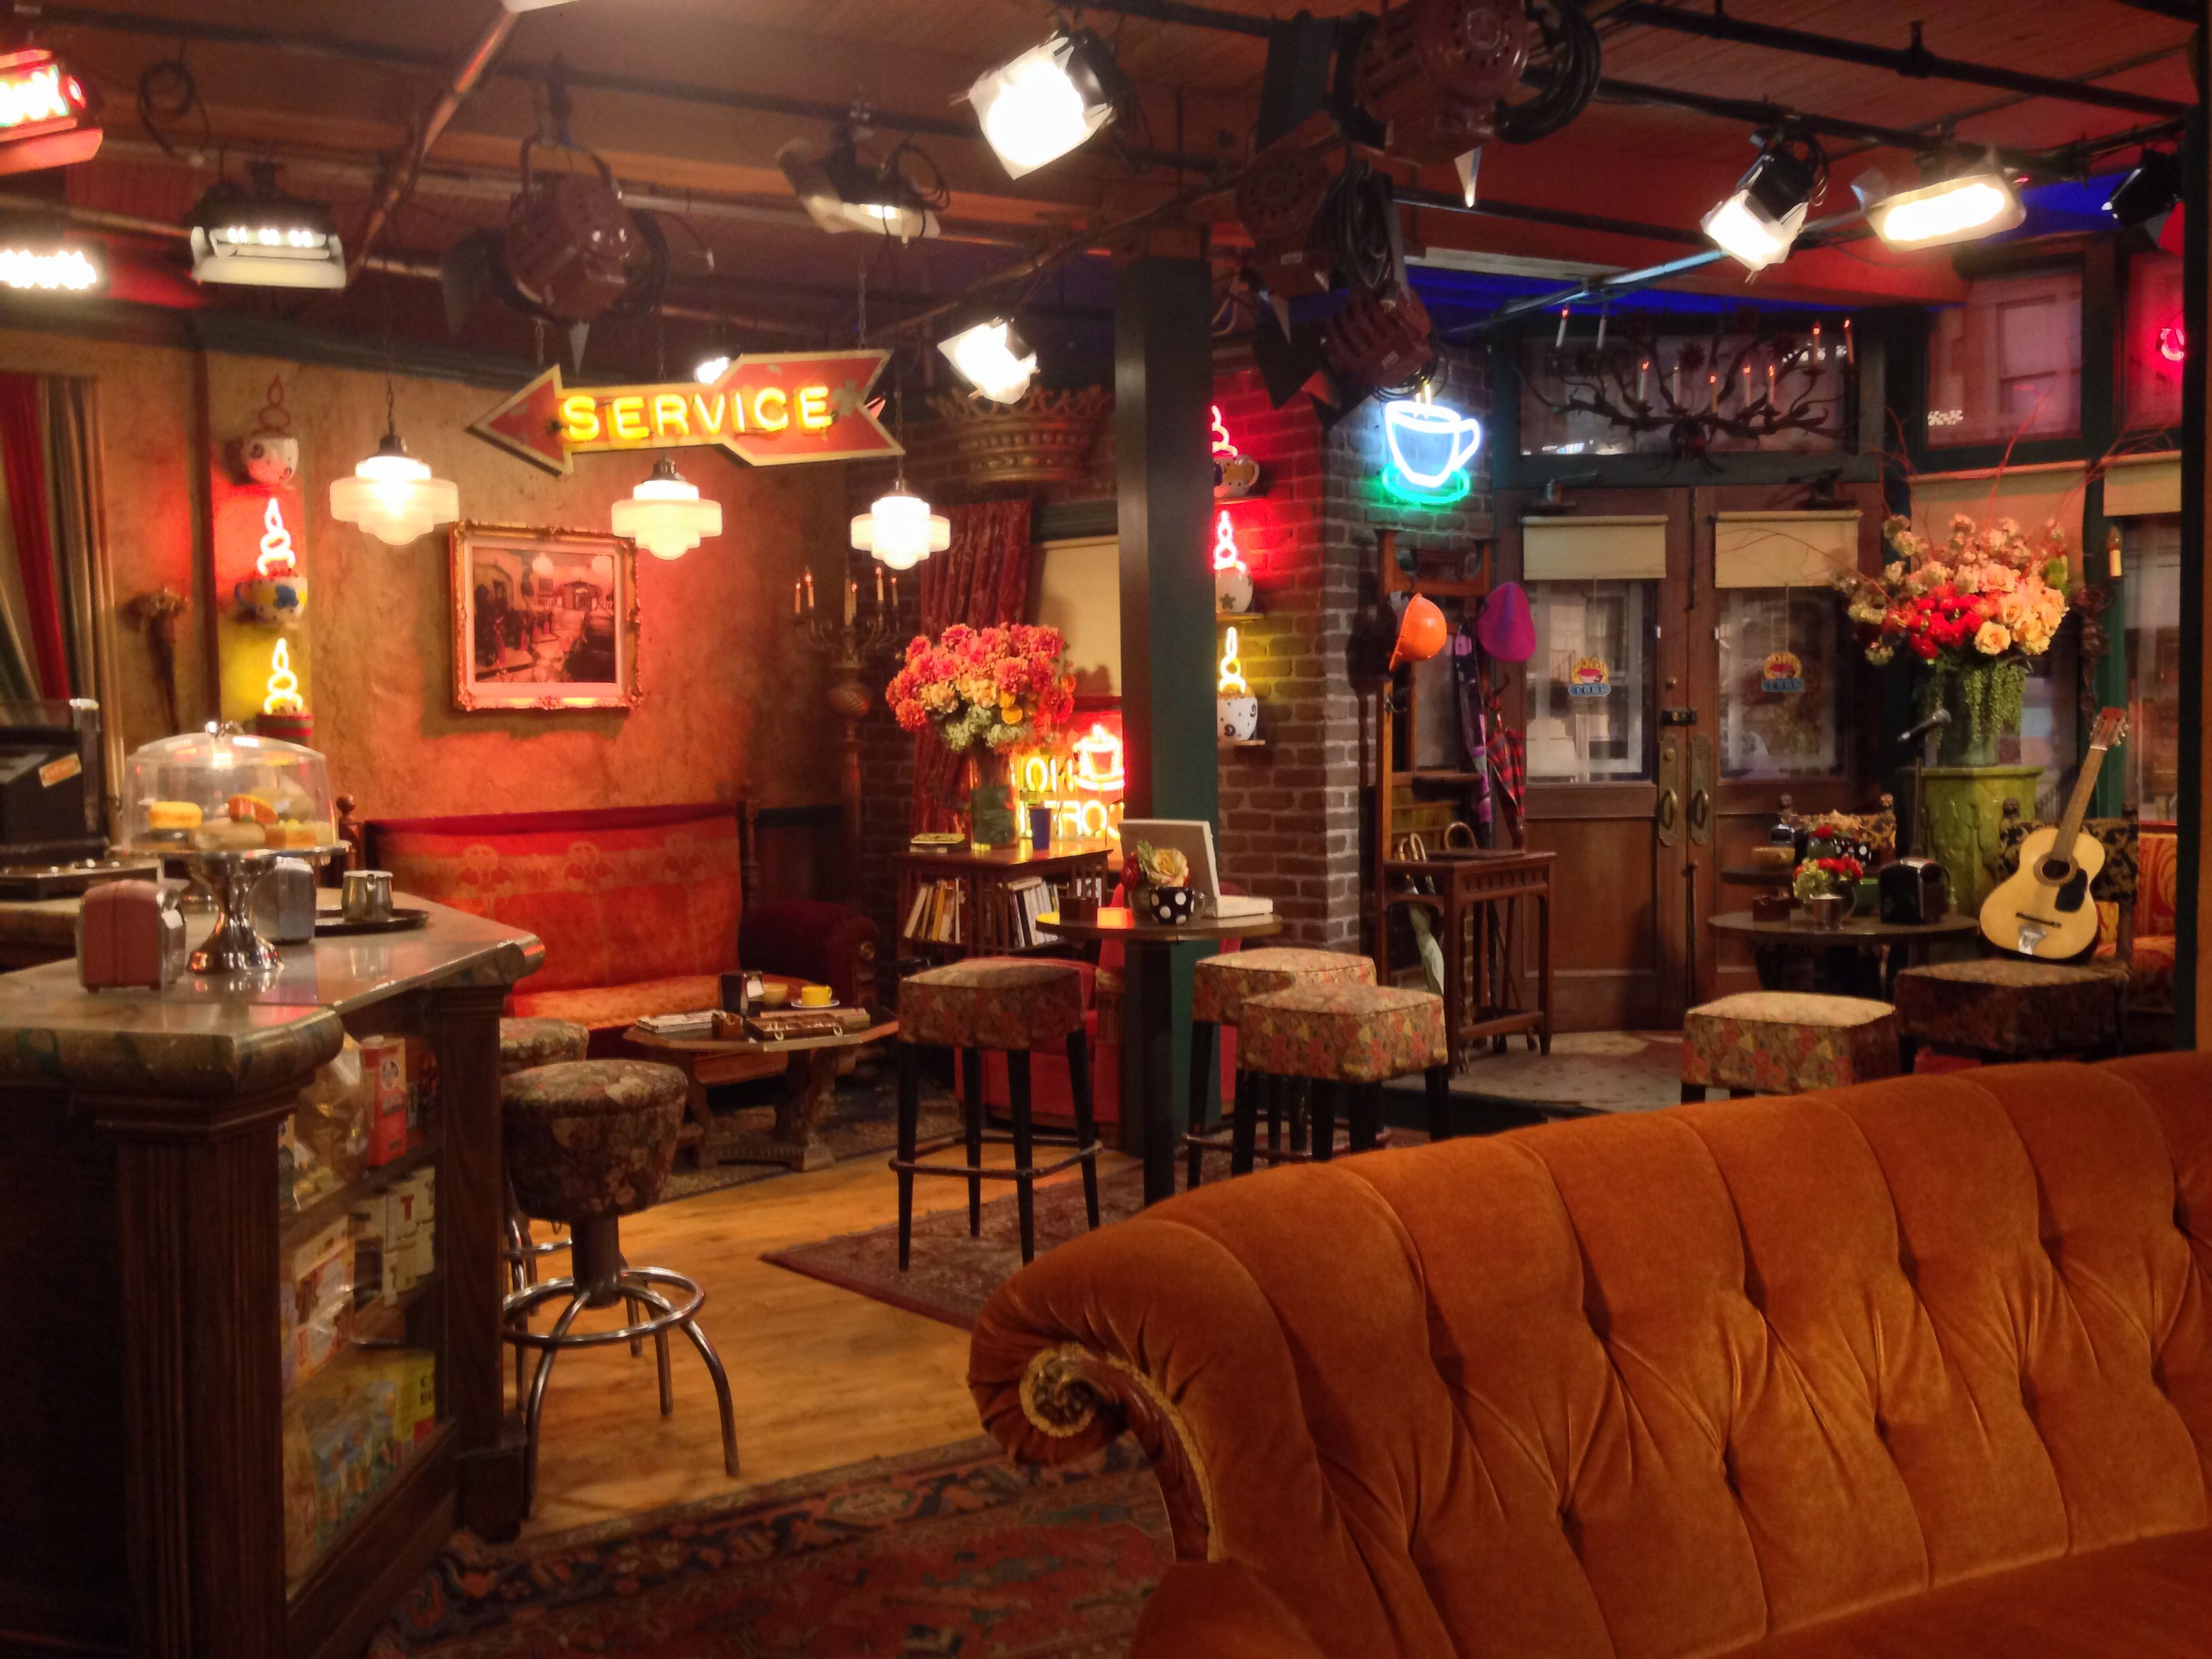 Central Perk Set From The Friends Show Warner Bros Studio Tour Studio Tour Decor Friends Show